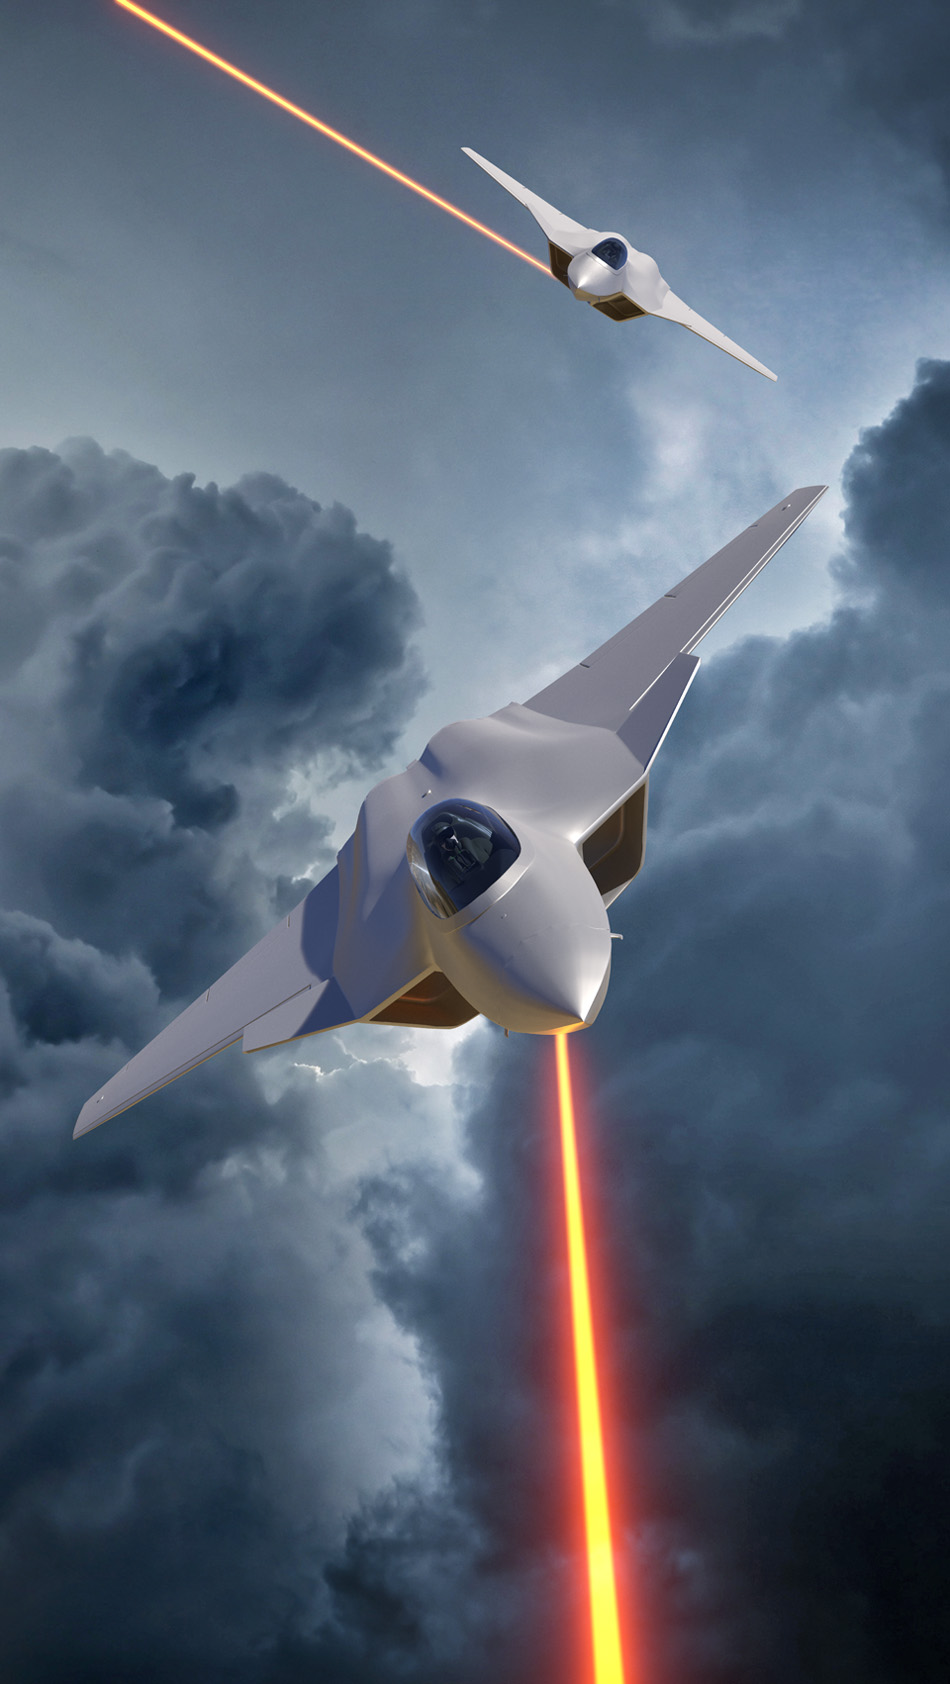 Link image to Future Combat Air System (FCAS) project